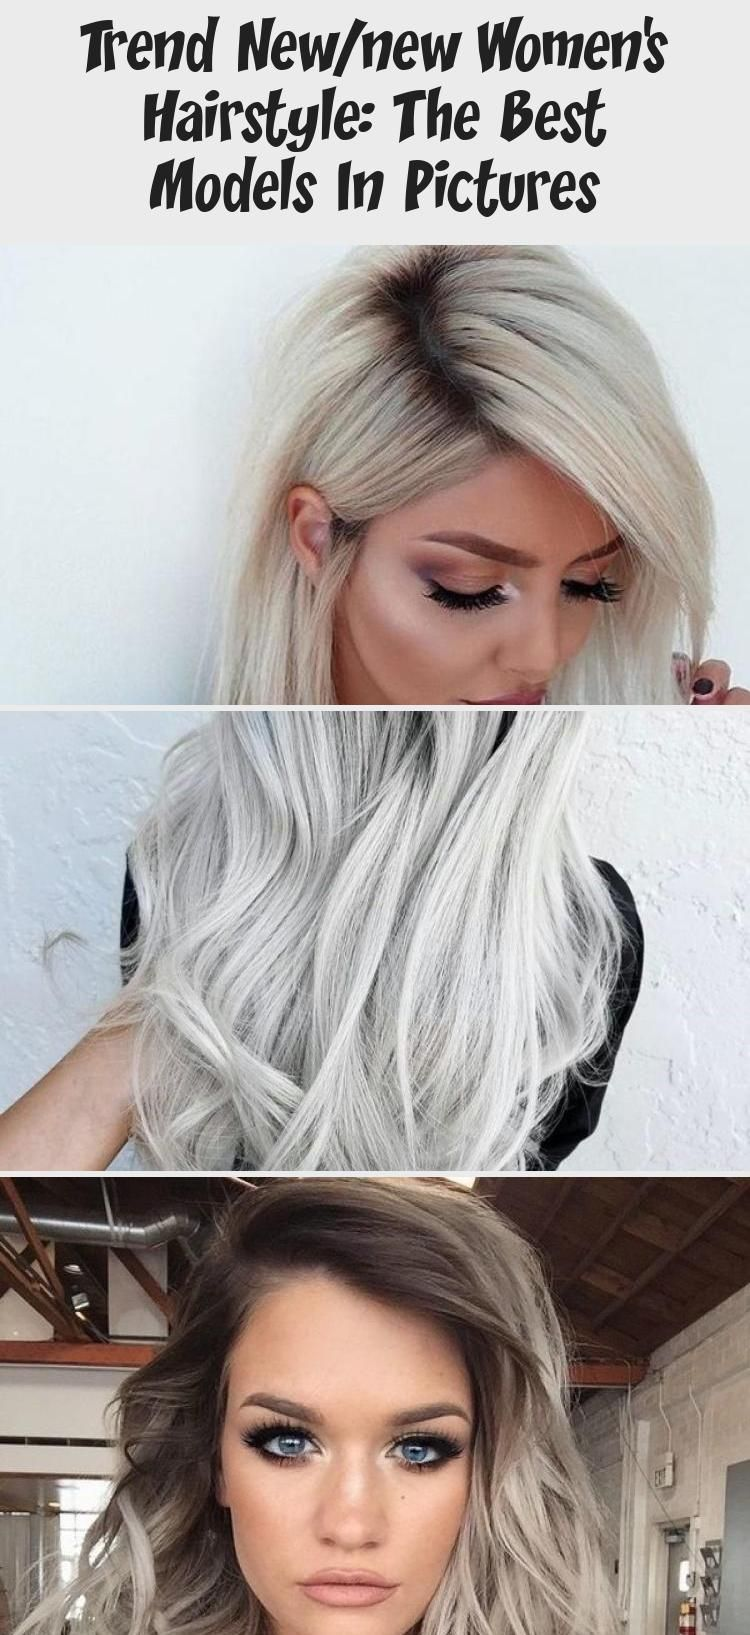 Trend New New Women S Hairstyle The Best Models In Pictures Womens Hairstyles Hair Styles Best Model